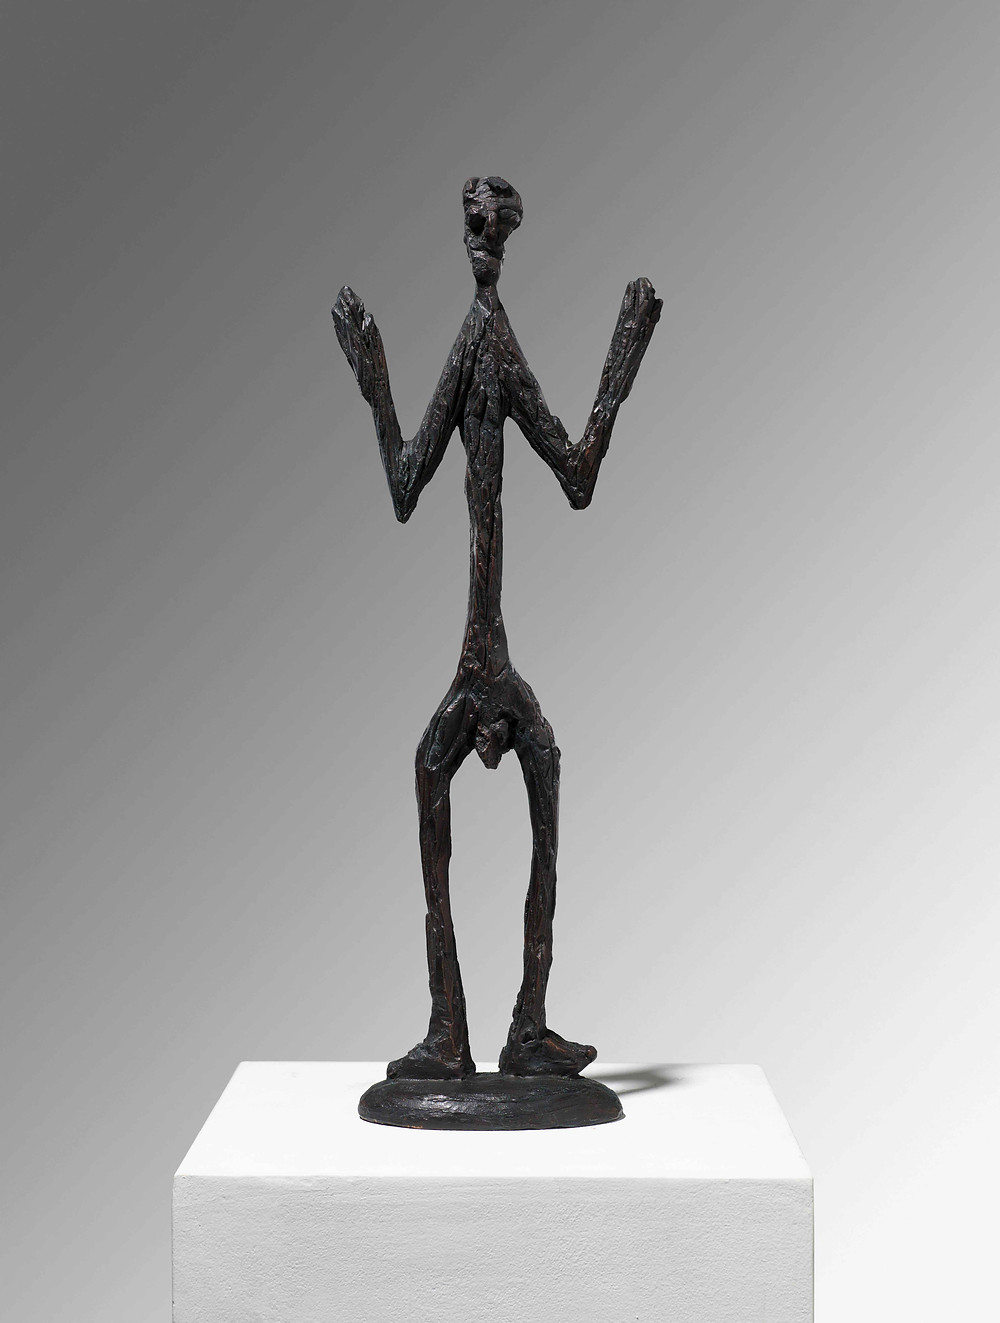 A.R. Penck (1939–2017) Standart-Figure, 1989 Bronze, cast number 3 in an edition of 6 58 x 17 x 9 cm Galerie Michael Werner. © DACS, 2019